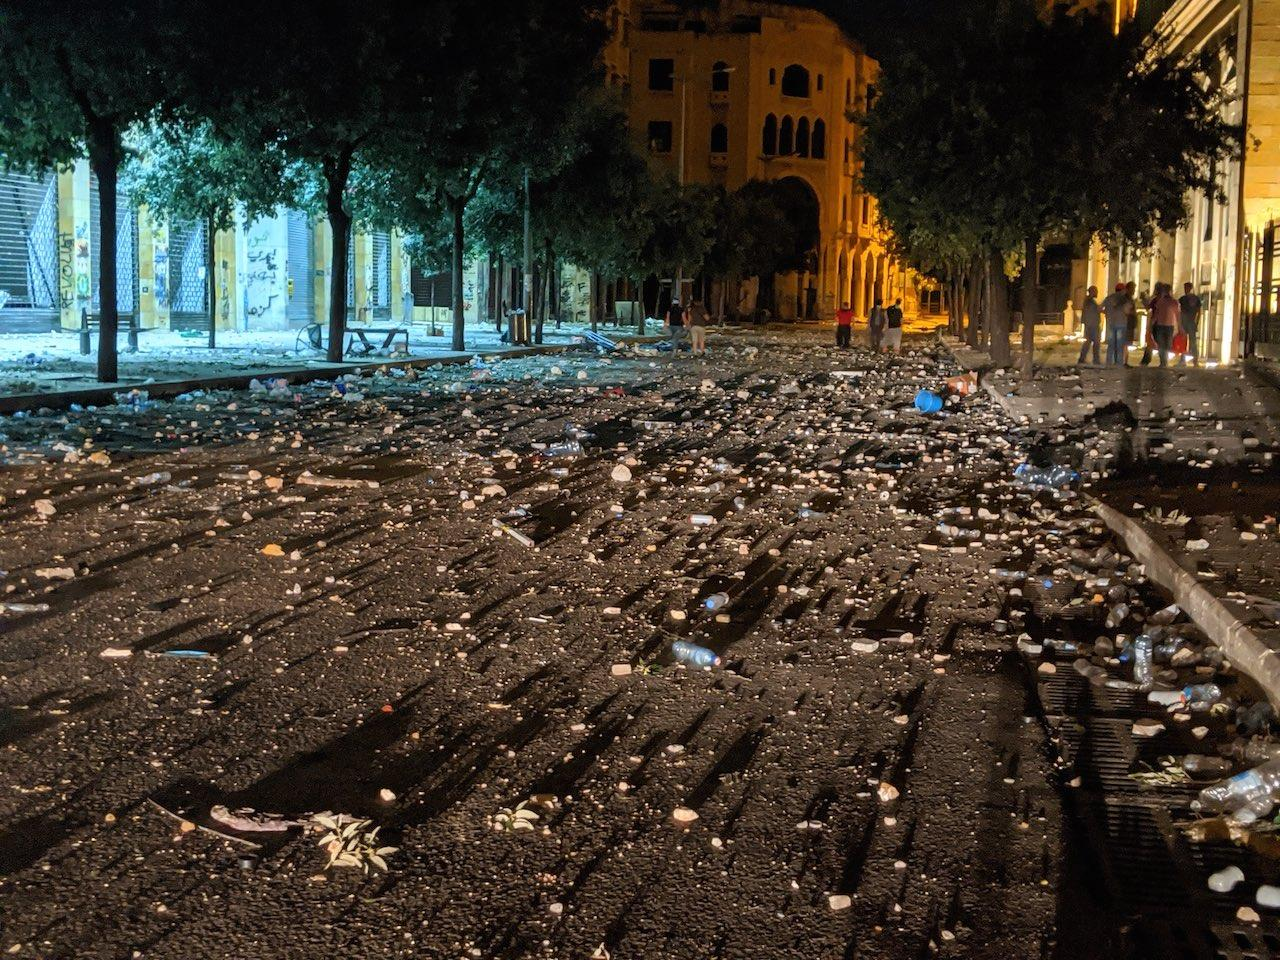 Downtown Beirut littered with tear gas canisters, rubber bullets, and debris following clashes.